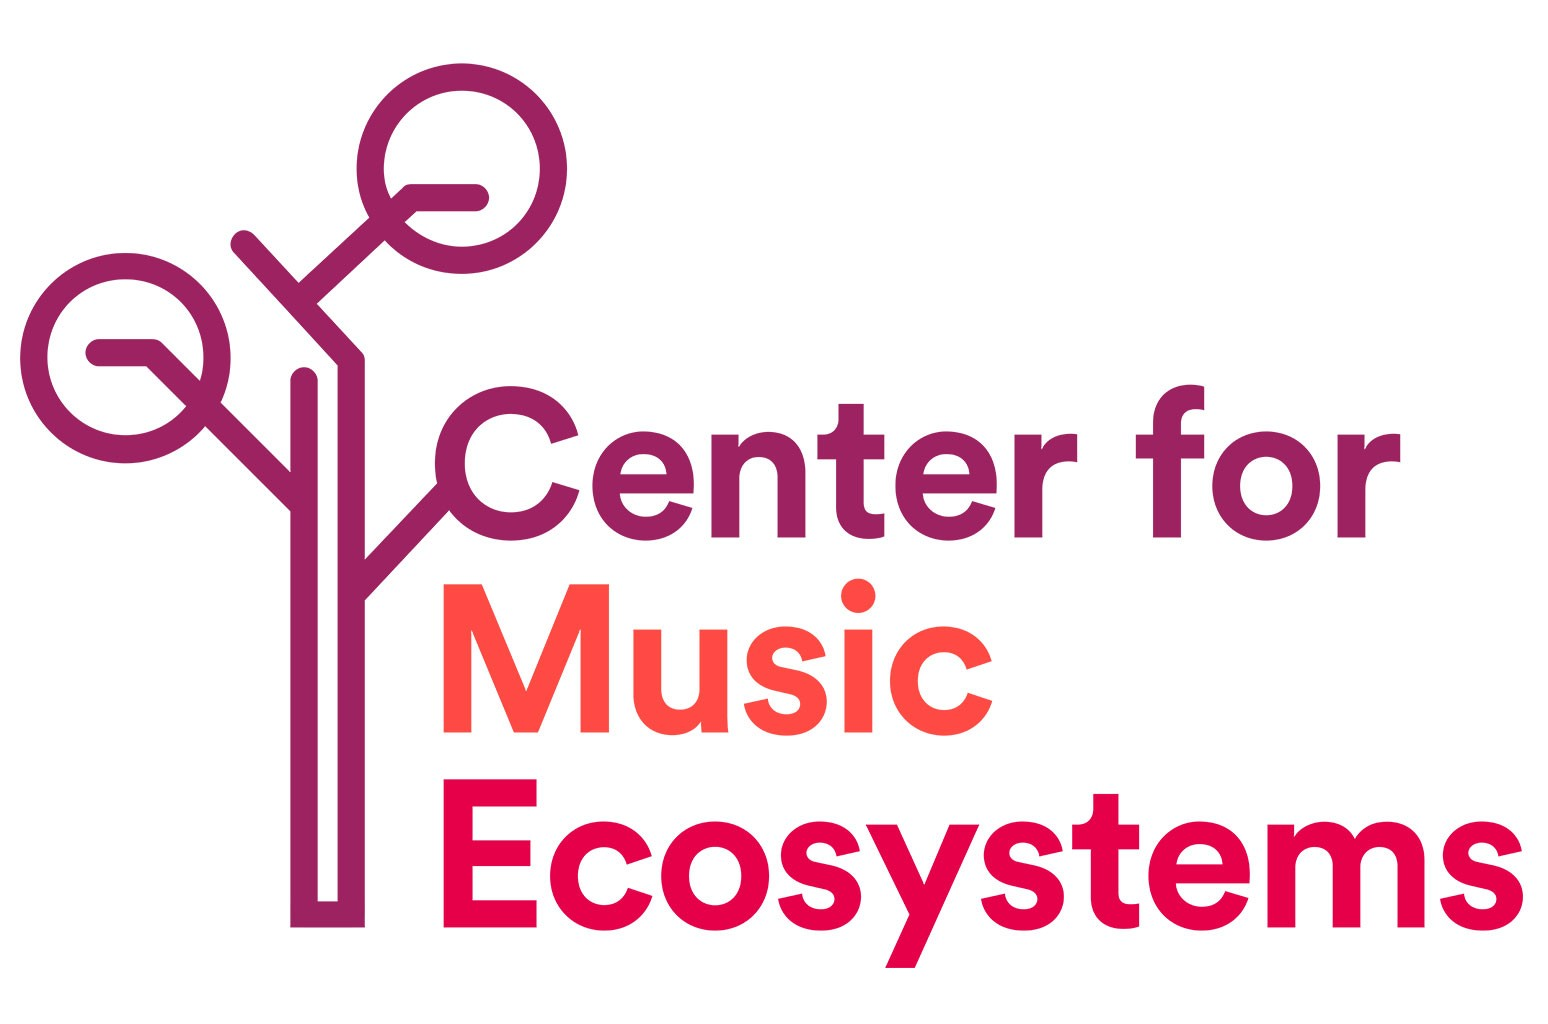 Center for Music Ecosystems